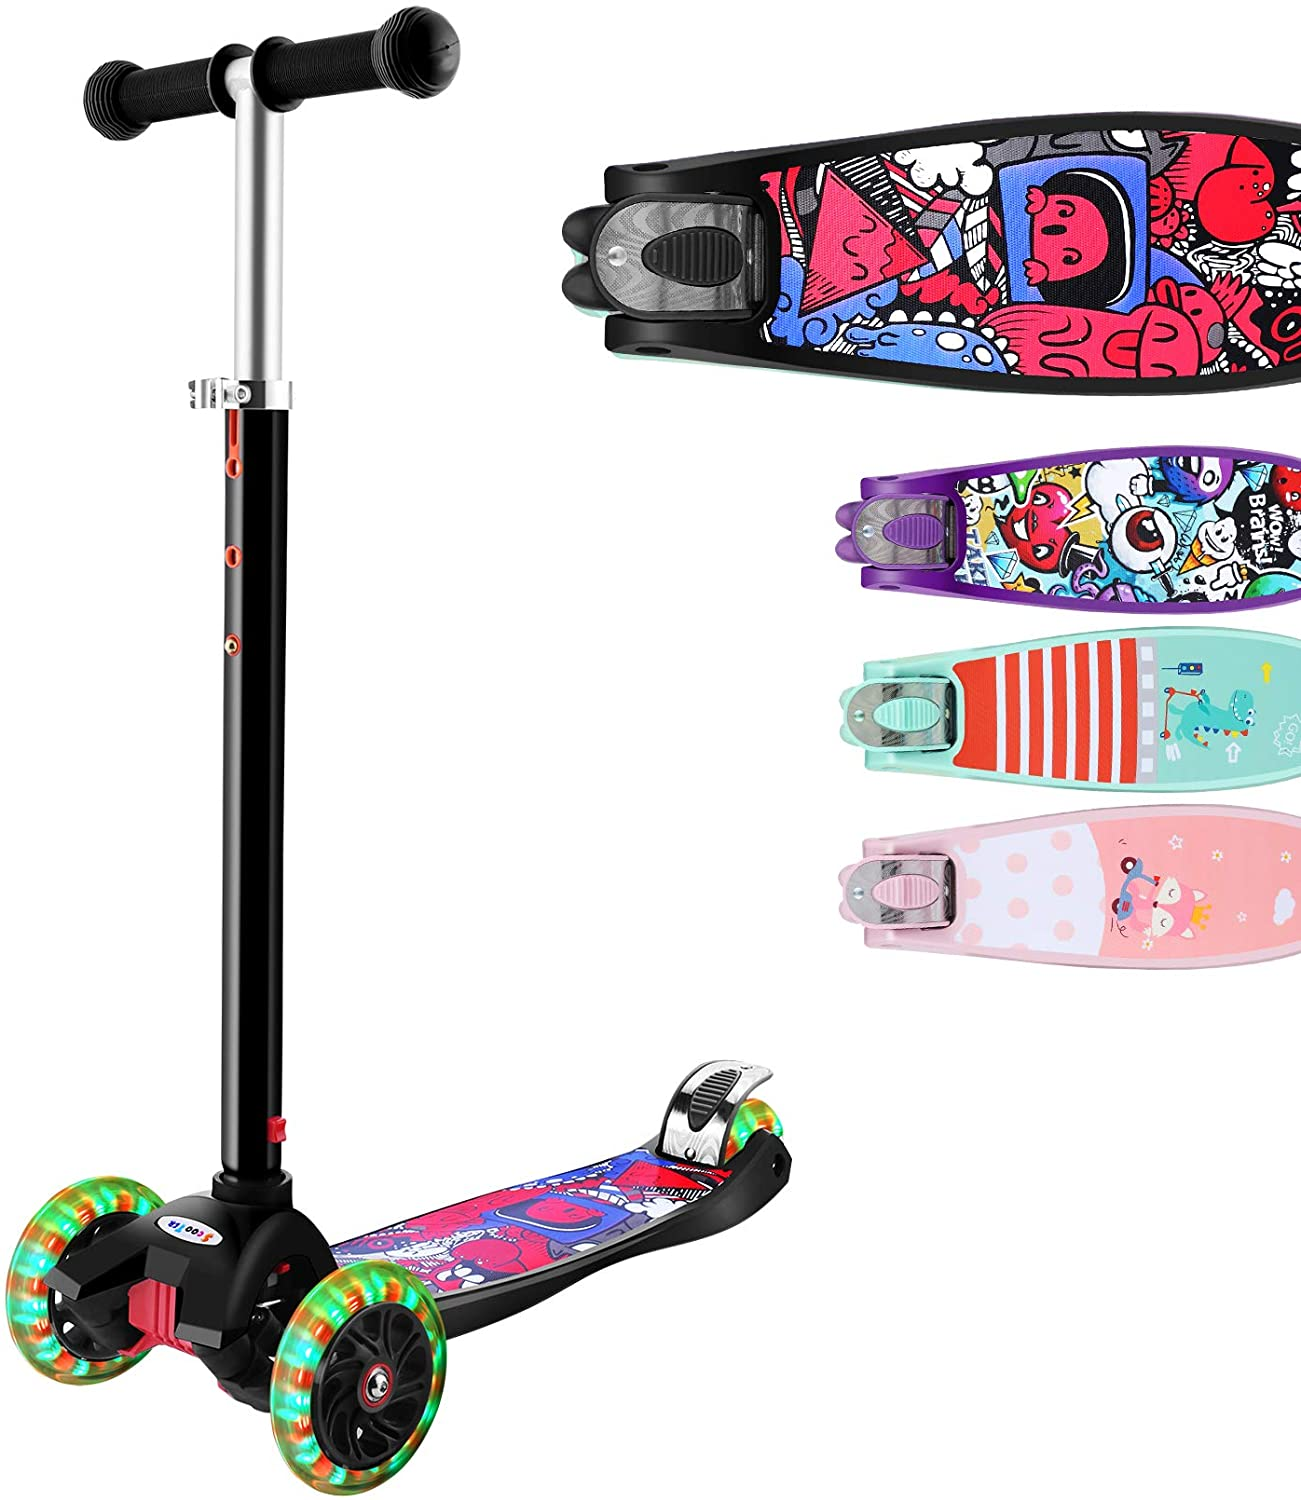 Hikole 3 Wheeled Scooter for Kids Girls & Boys with Adjustable Lean-to-Steer Handlebar, Extra-Wide Deck PU Flashing Wheels for Children 3-12 Years Old